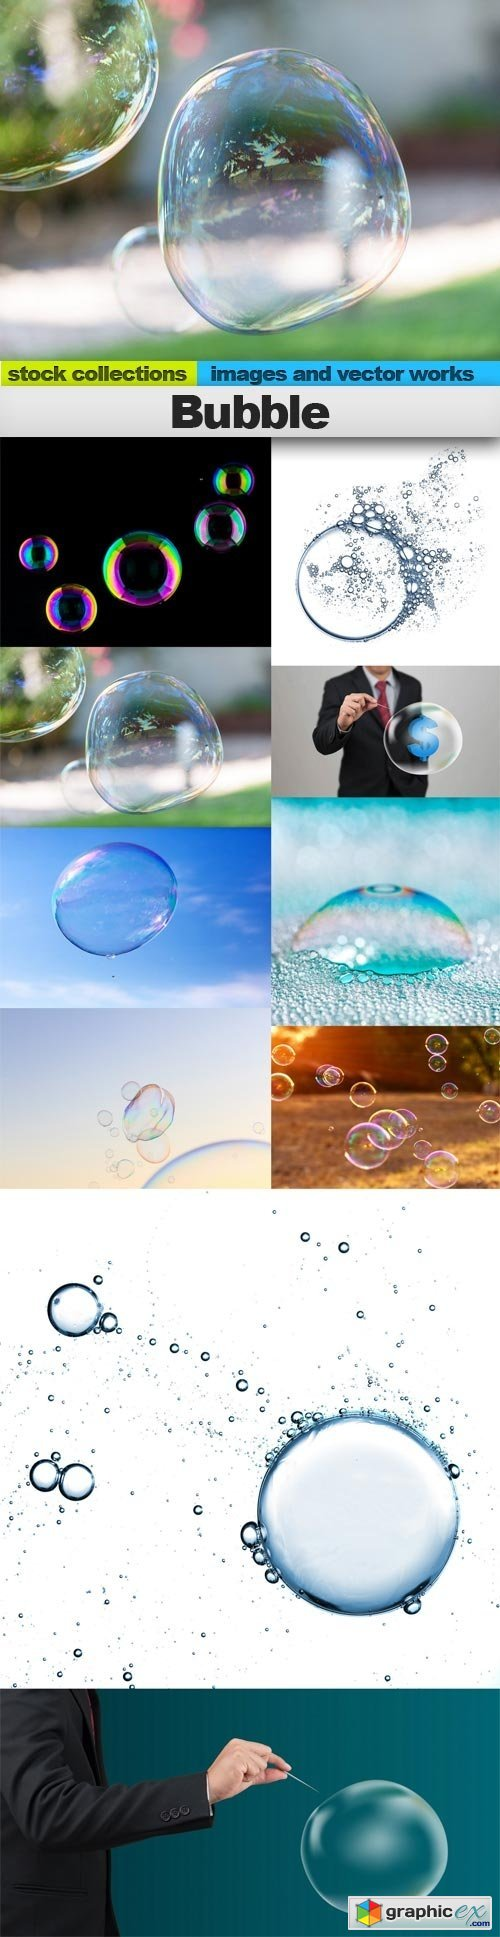 Bubble, 10 x UHQ JPEG